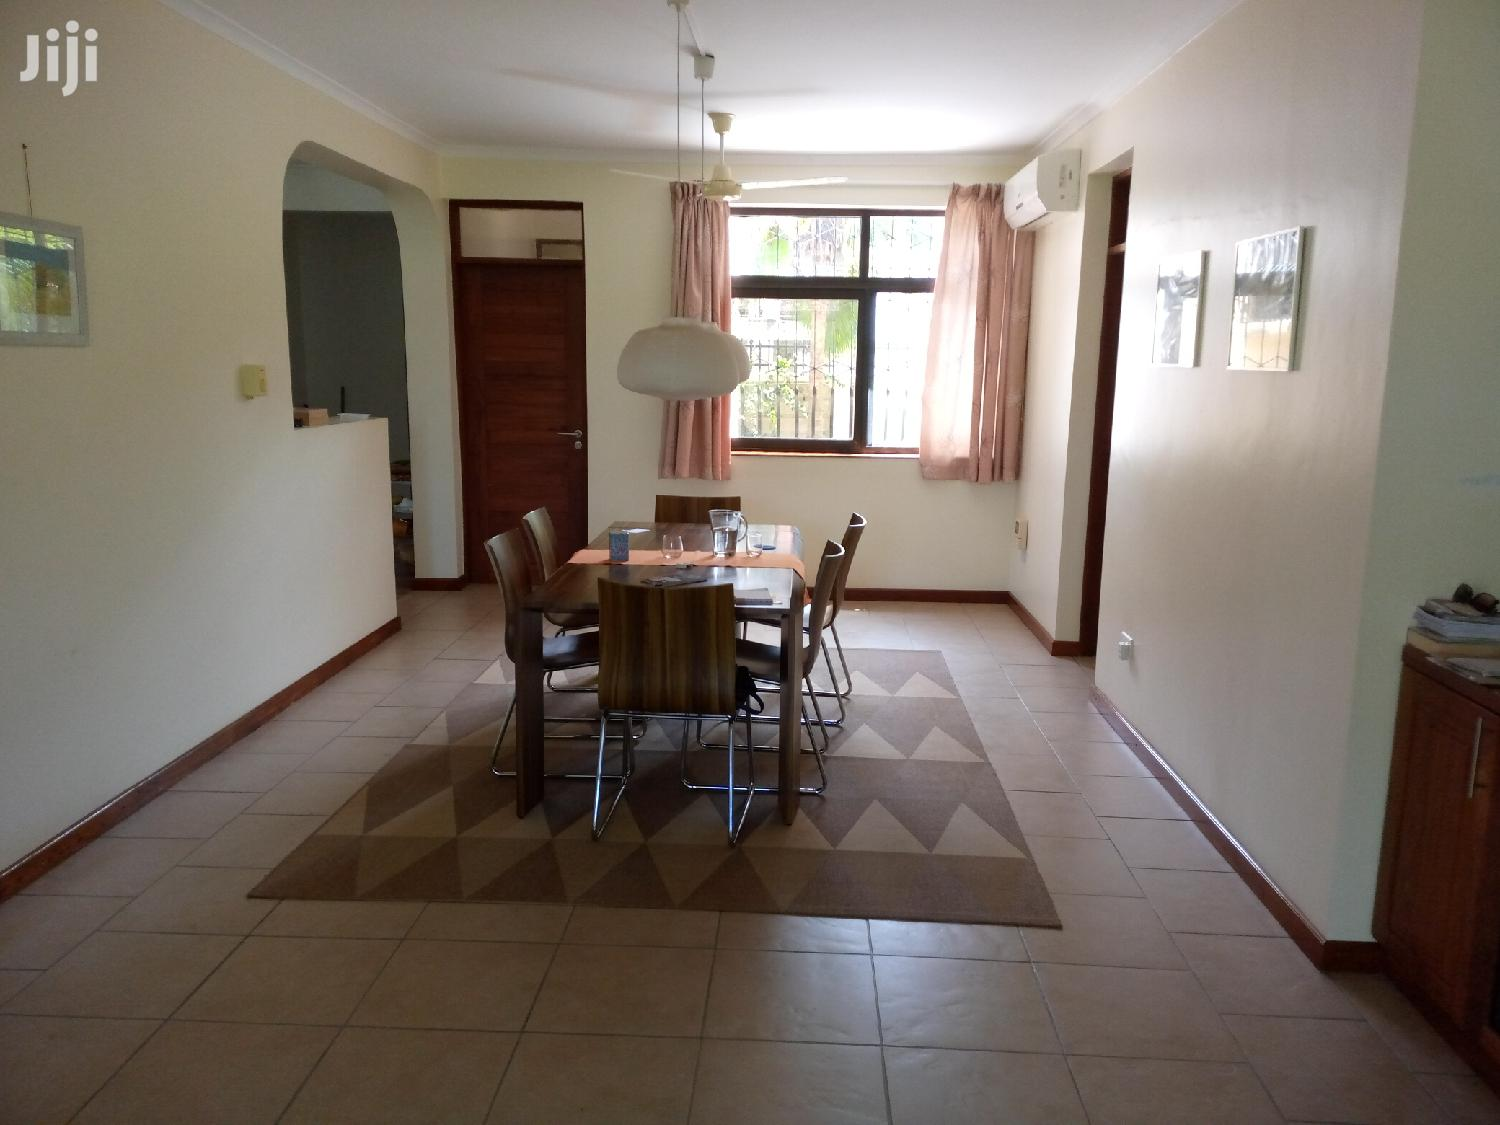 5 Bedrooms House At Mbezi Beach For Rent | Houses & Apartments For Rent for sale in Kinondoni, Dar es Salaam, Tanzania